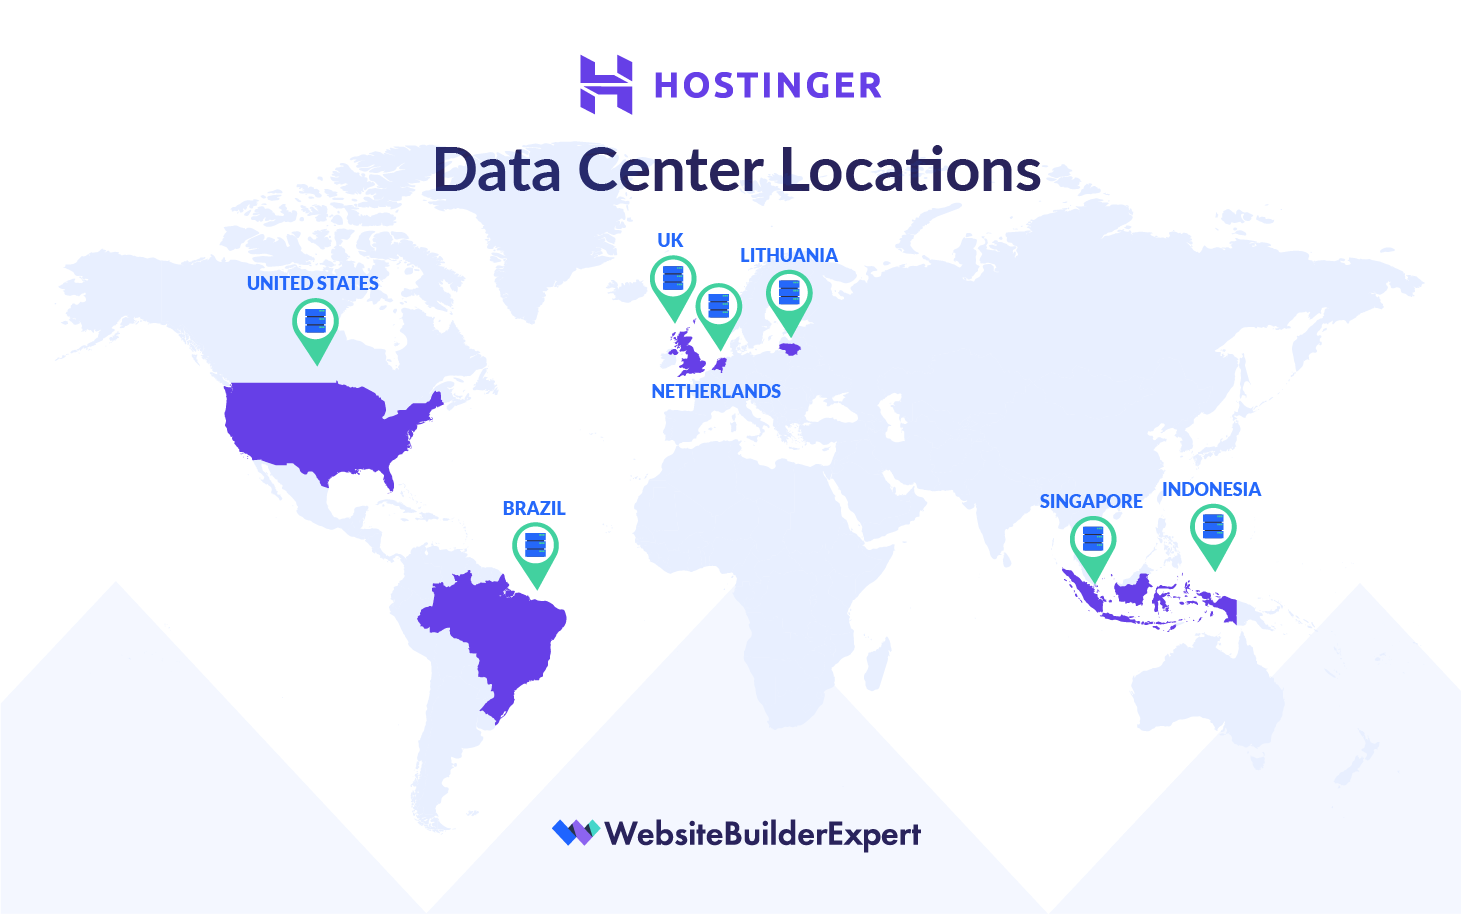 hostinger data center locations map graphic